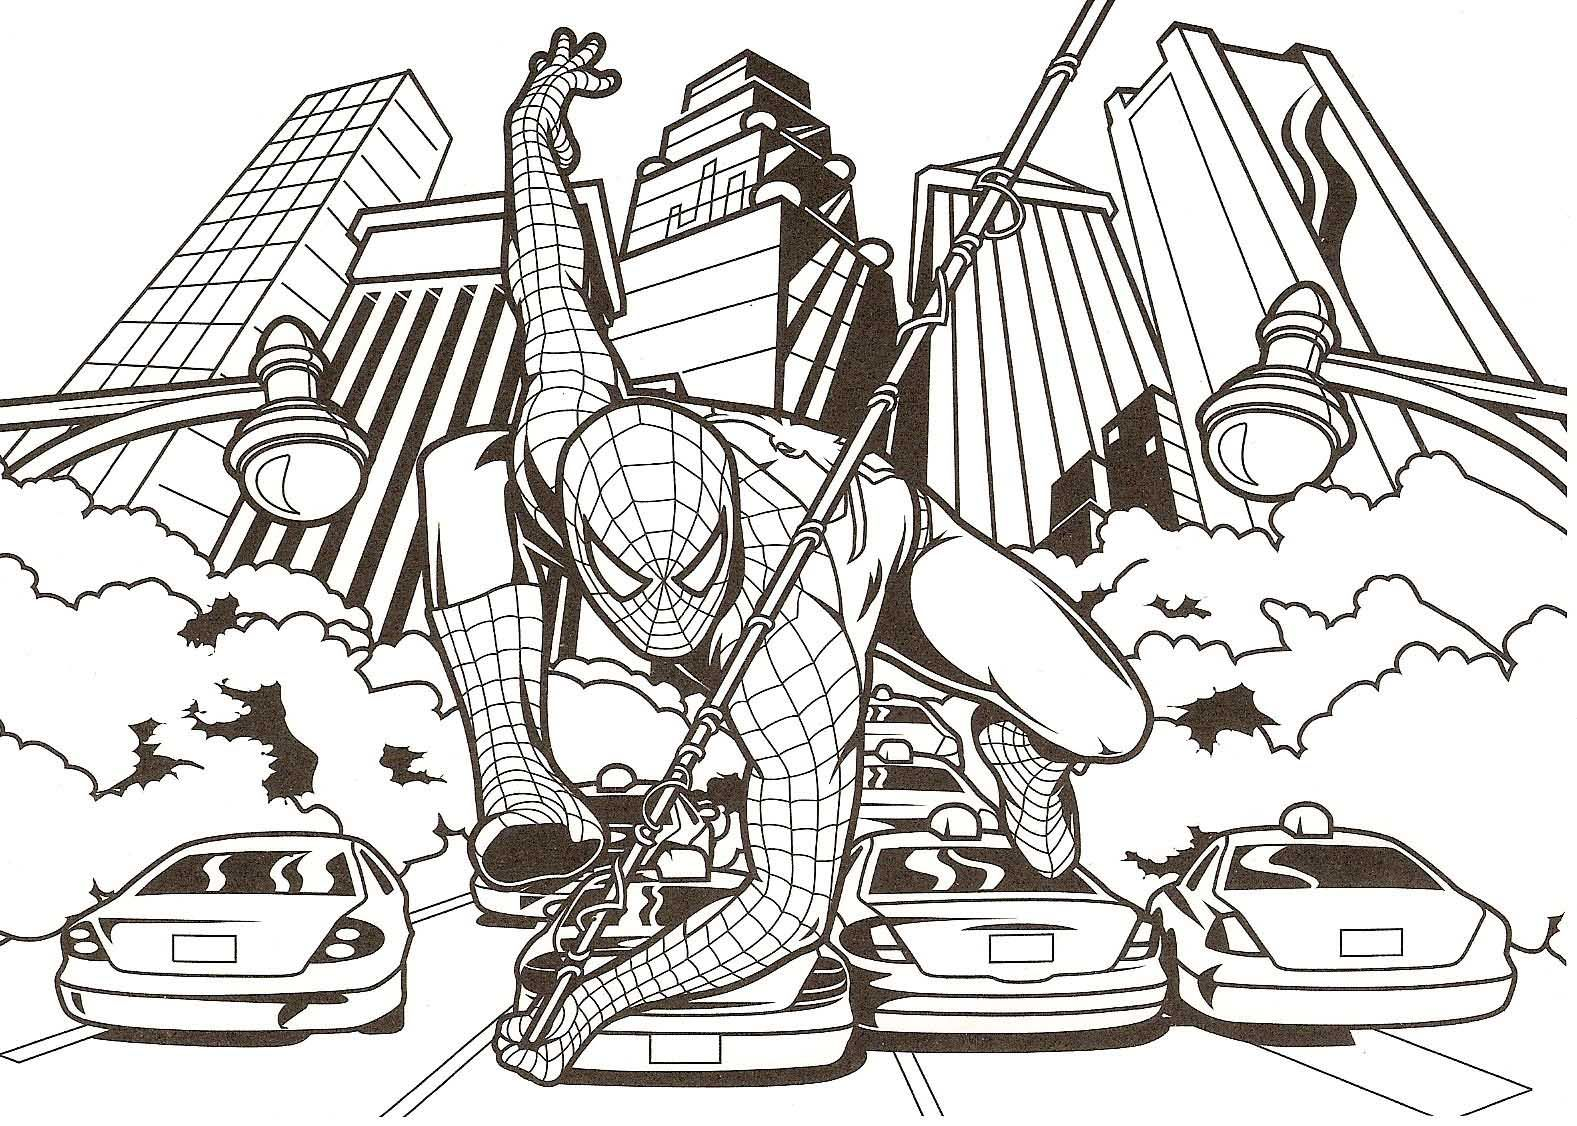 Spider Man Unlimited Coloring Pages. Spider Man Coloring Pages Games  Colour Me Pinterest Spiderman